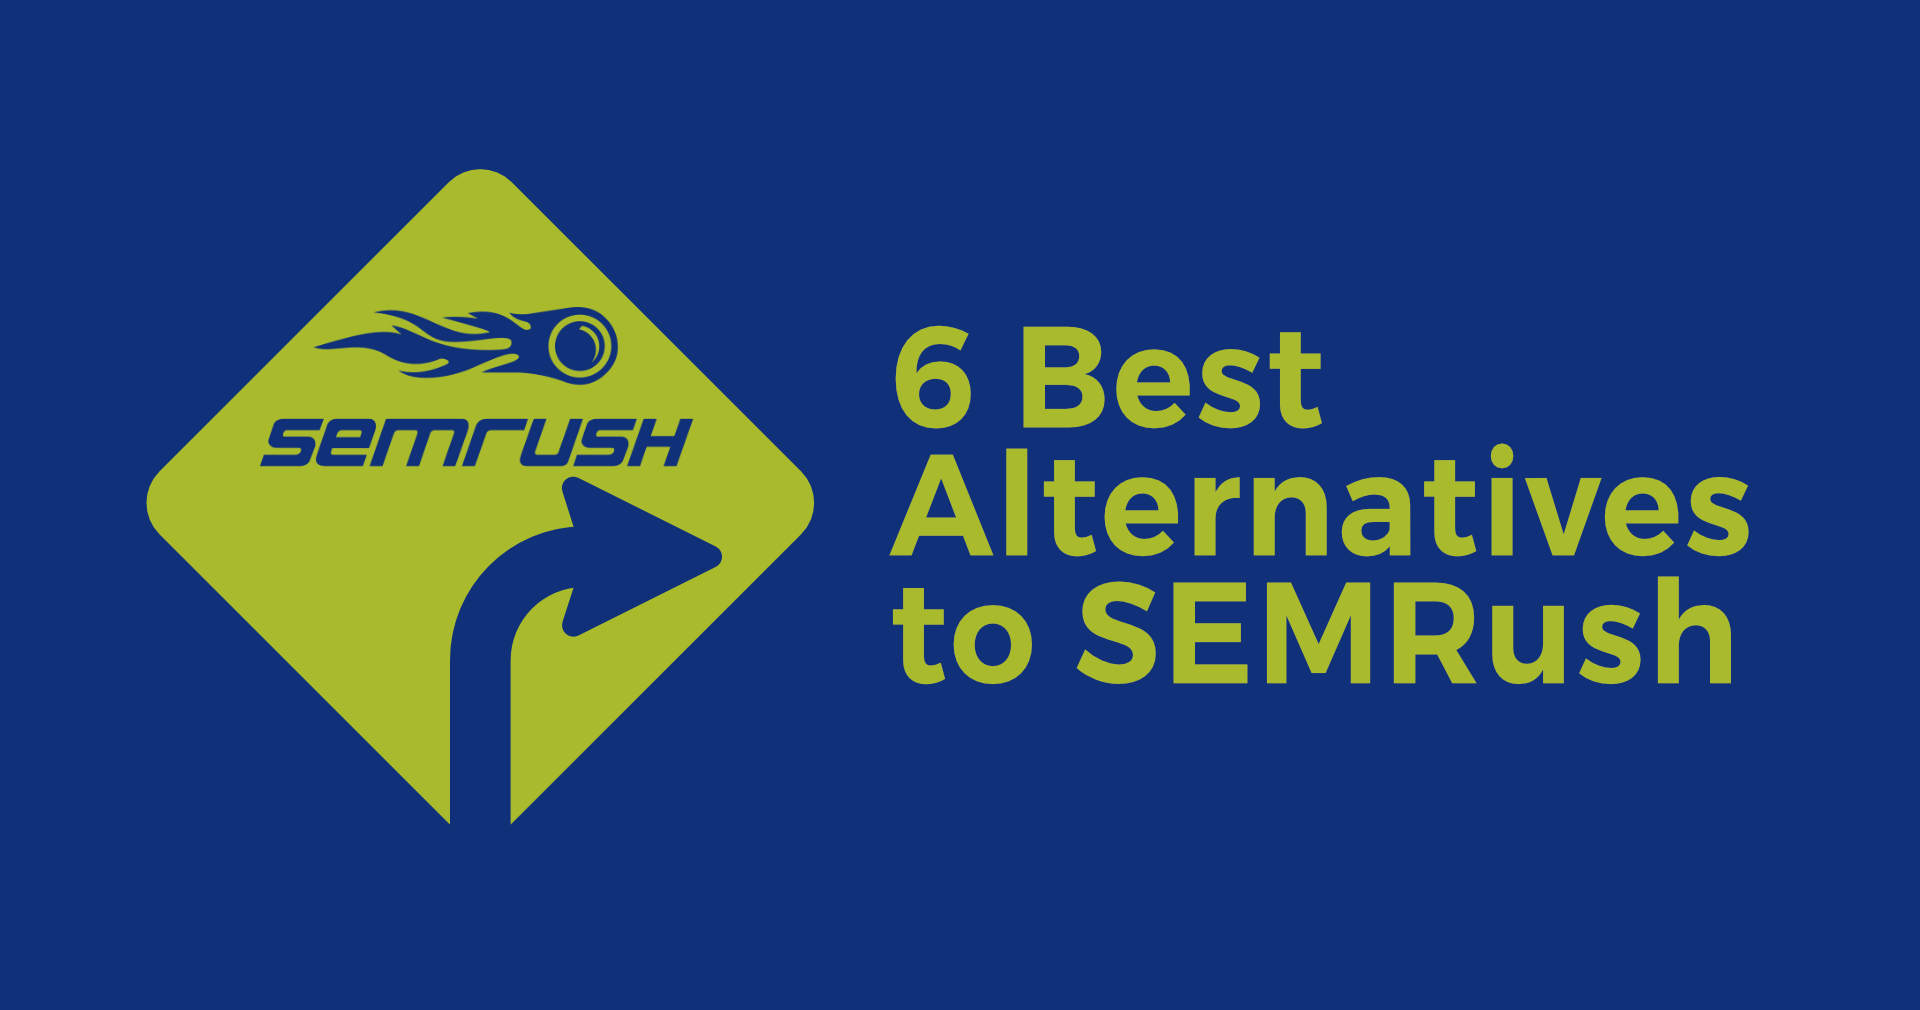 6 Best Alternatives to SEMRush